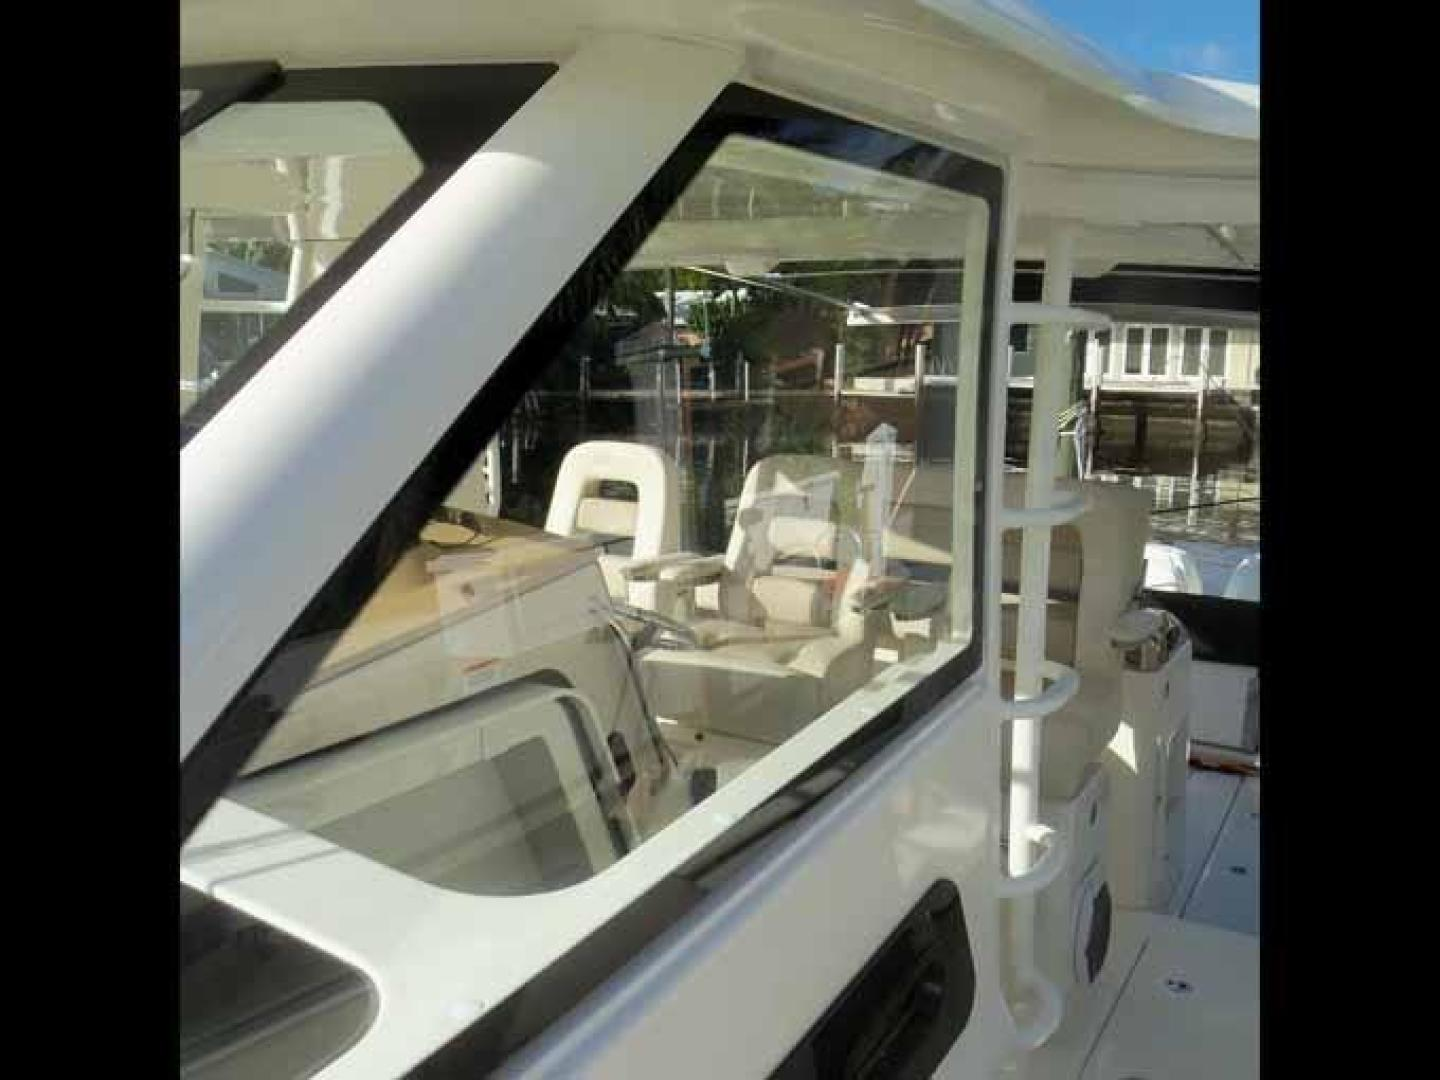 Boston Whaler-Outrage 42 2016-DEALERS CHOICE Ft. Lauderdale-Florida-United States-OPTIONAL GLASS SIDE PANELS-1058290 | Thumbnail